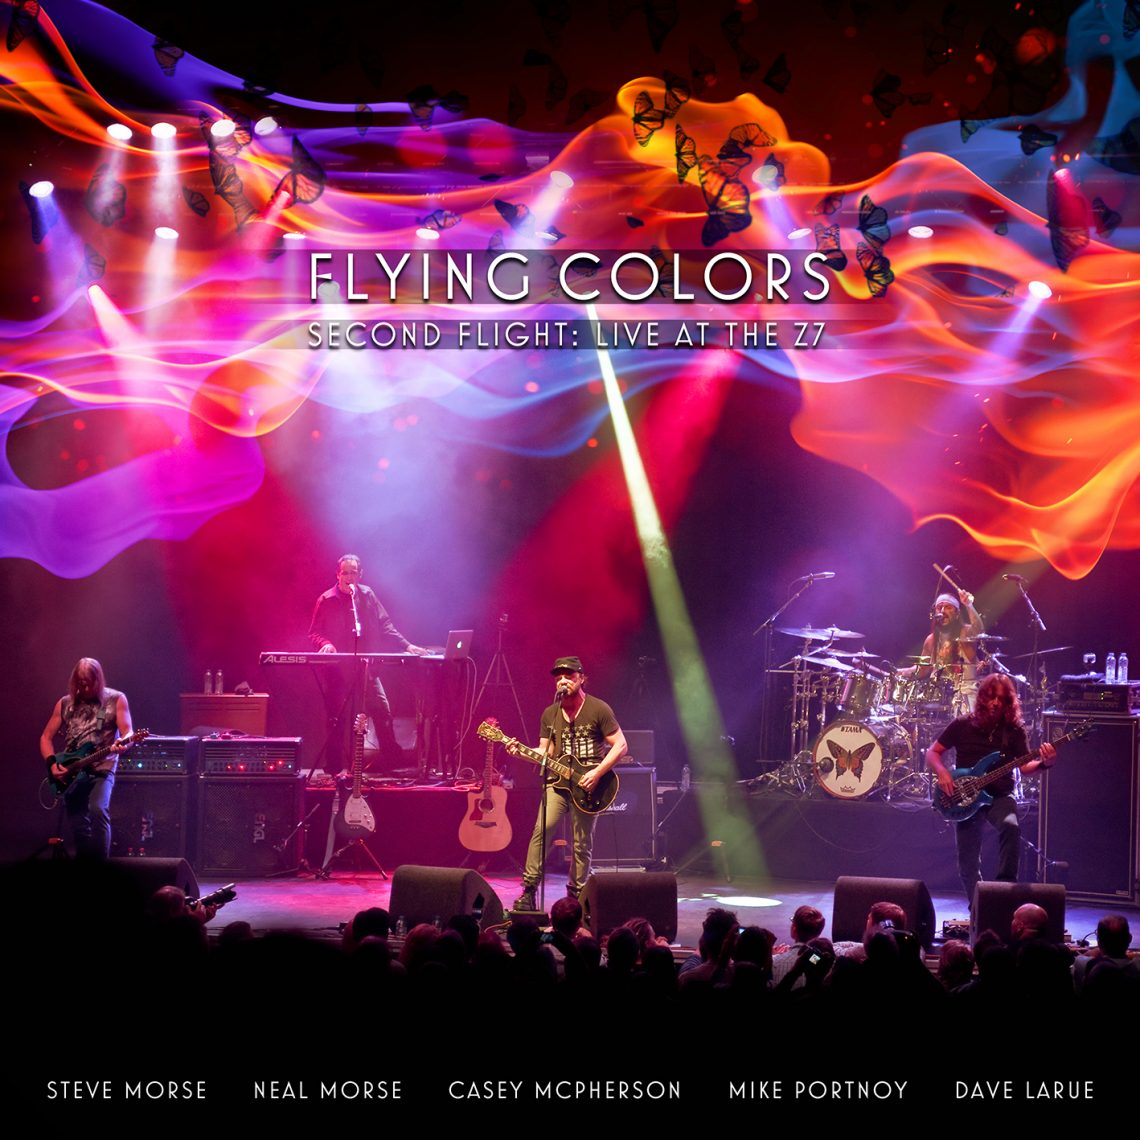 FLYING COLORS 'SECOND FLIGHT': LIVE AT THE Z7 – CD & DVD REVIEW